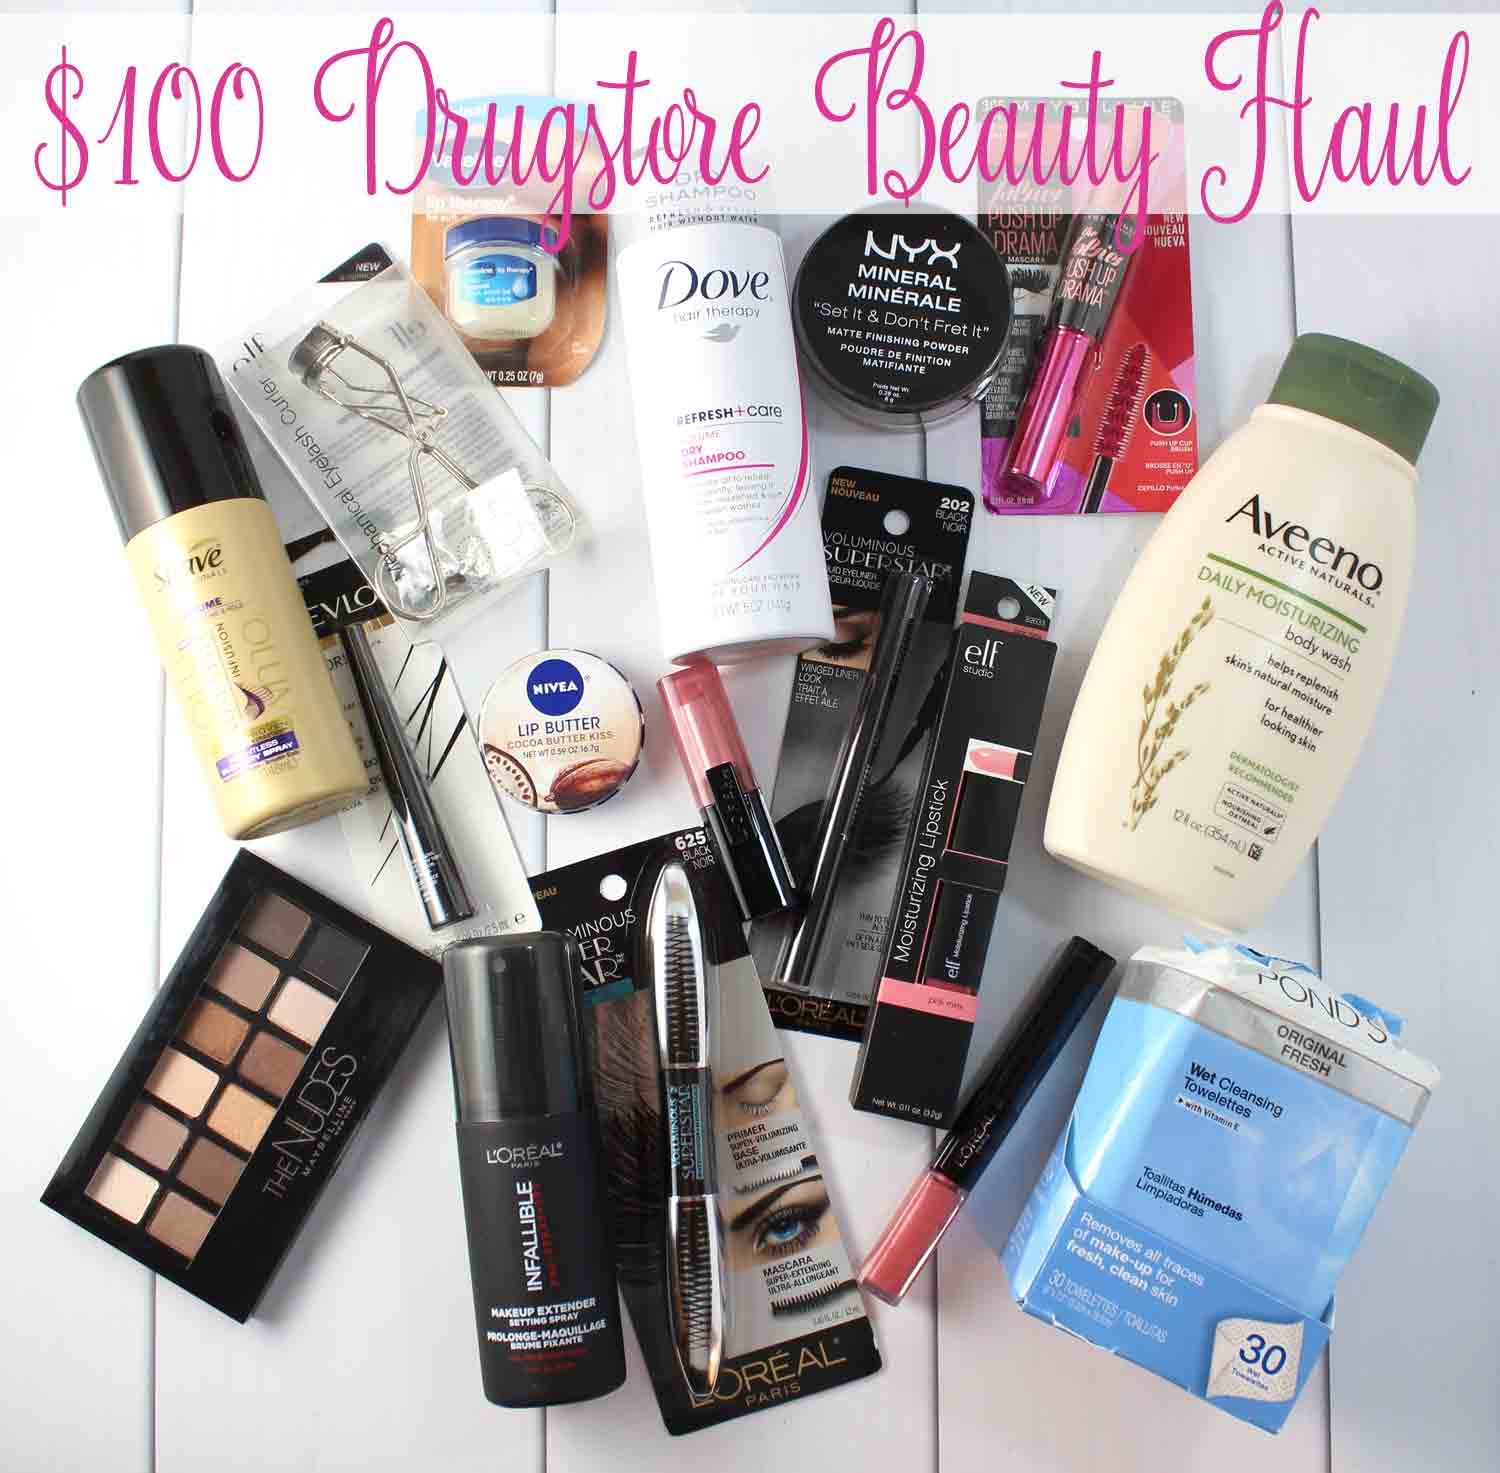 $100 Drugstore Beauty Haul: See how much you can get at CVS when shopping with coupons and ExtraBucks for just $100.